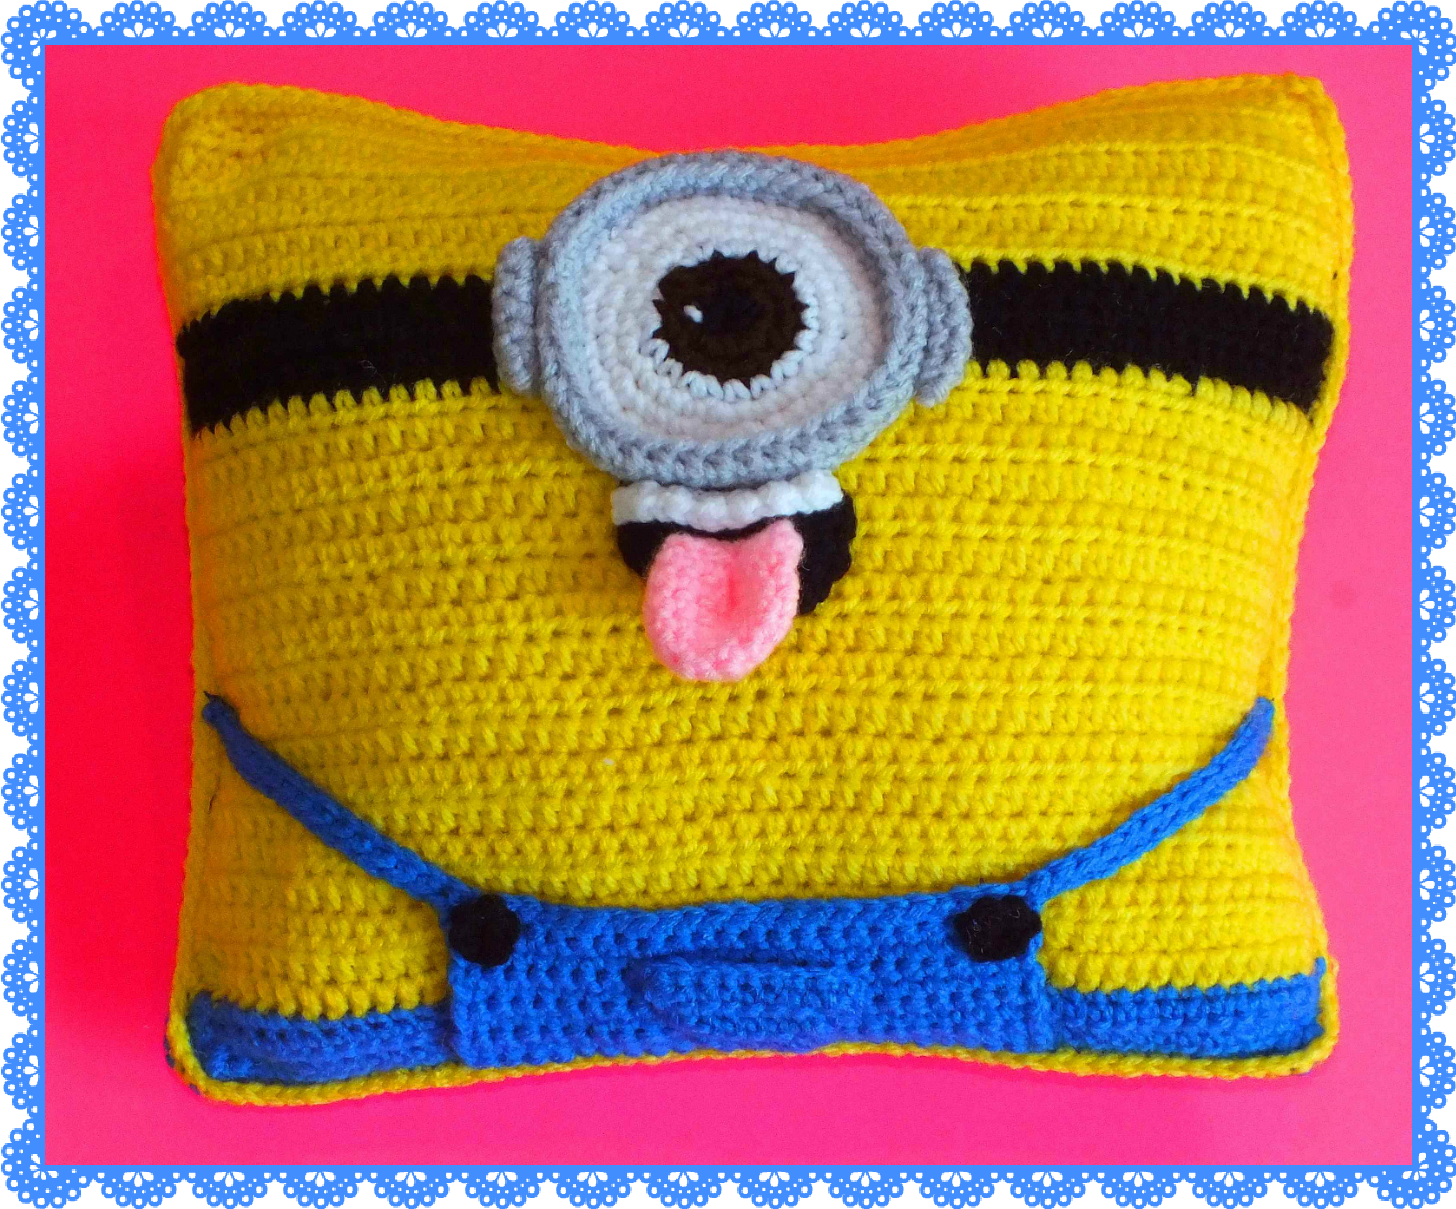 Connies spot crocheting crafting creating free minion connies spot crocheting crafting creating free minion inspired dollpillow bankloansurffo Choice Image